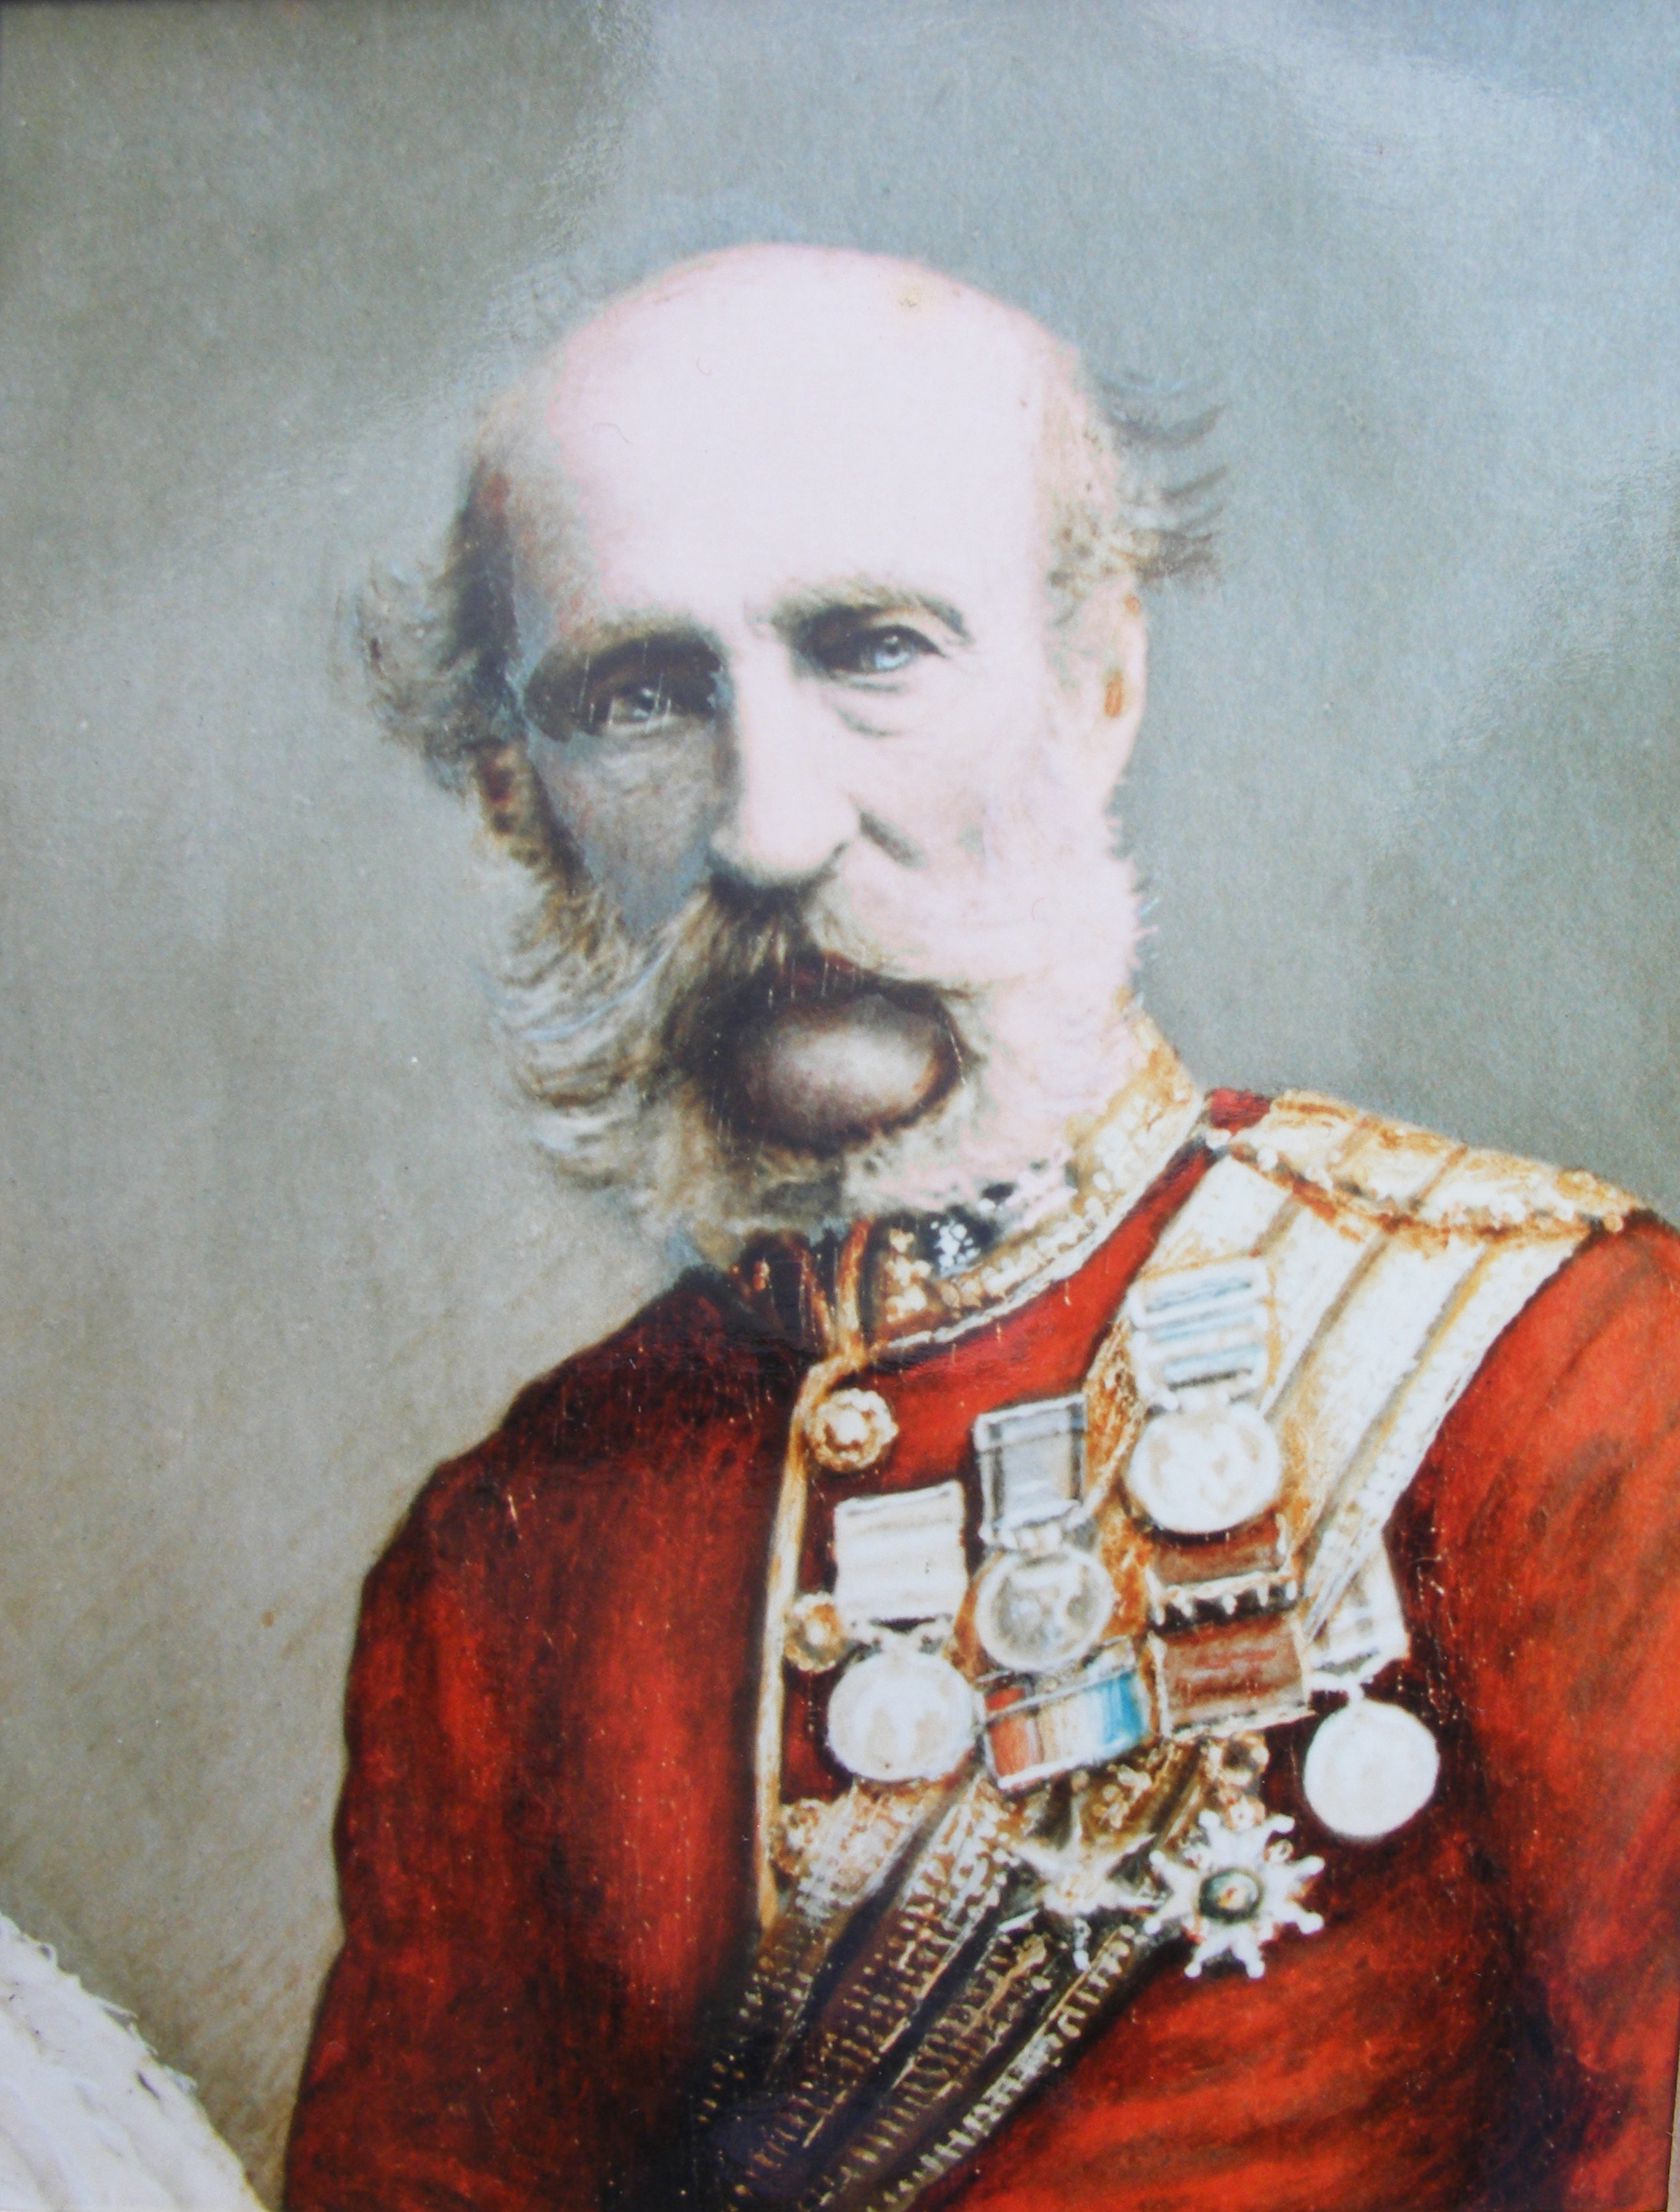 Royal Artillery Wikipedia - If celebrities were 19th century military generals they would look like this